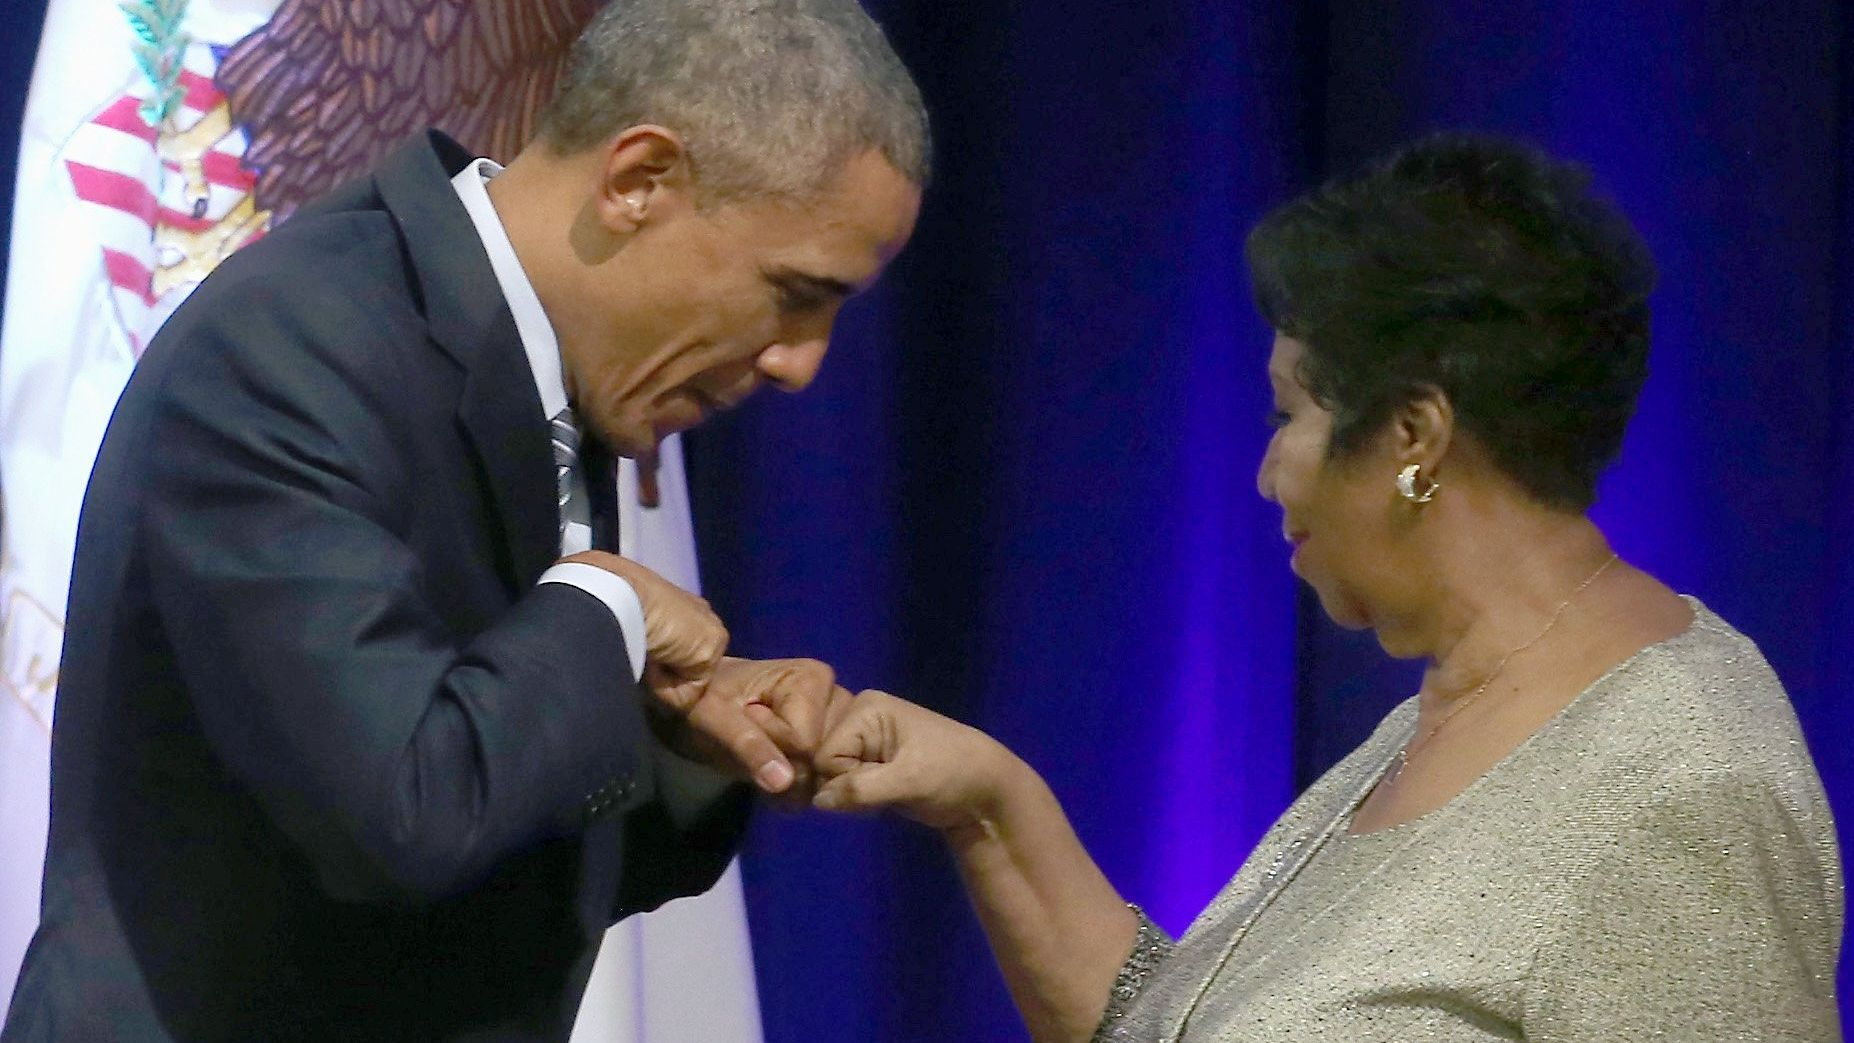 President Obama won't be at Aretha Franklin's funeral, but